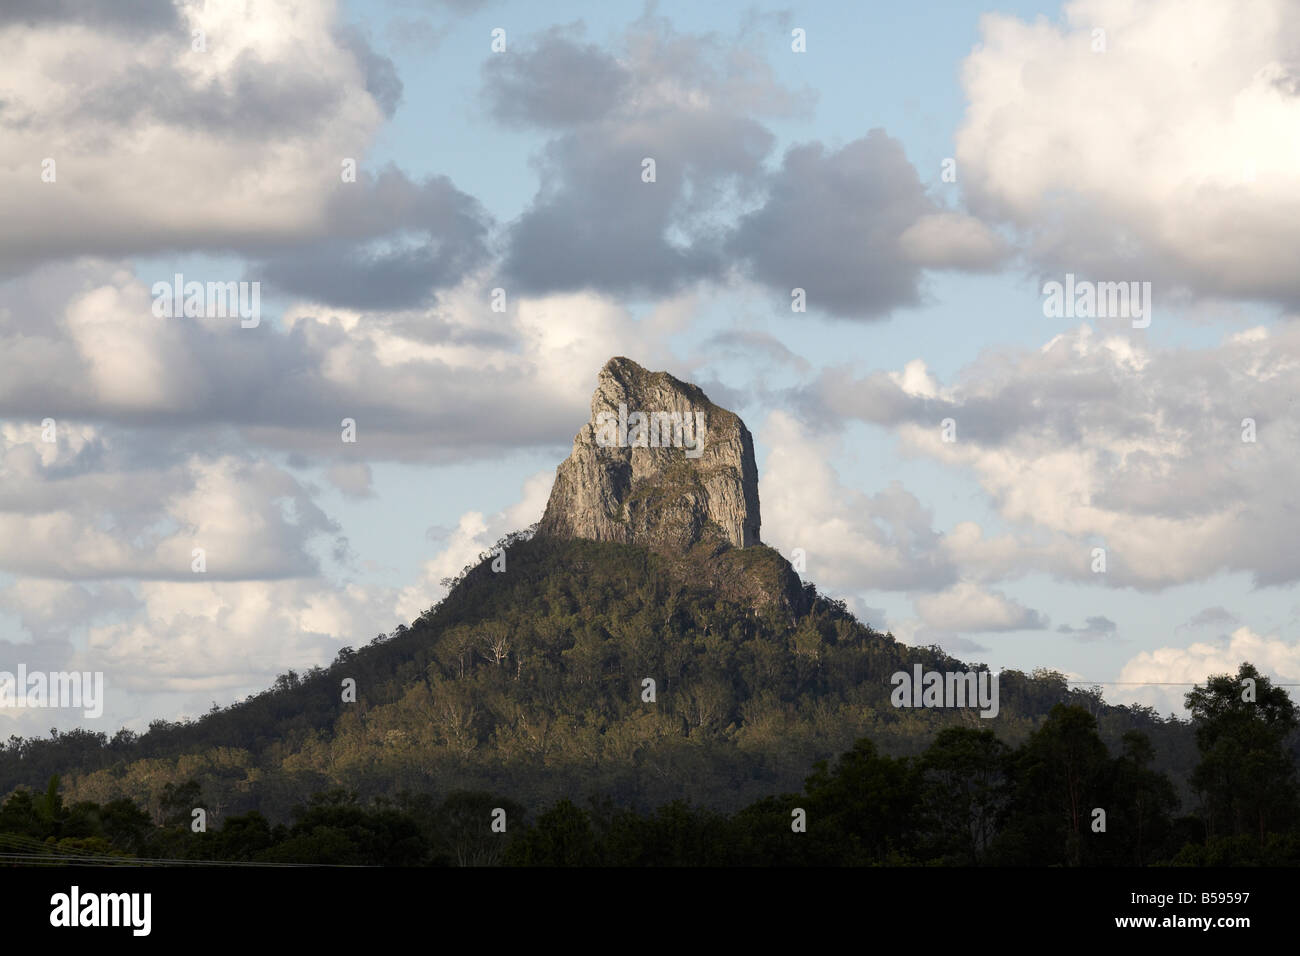 Coonowrin mountain in Glasshouse Mountains National Park Snshine Coast Queensland QLD Australia - Stock Image